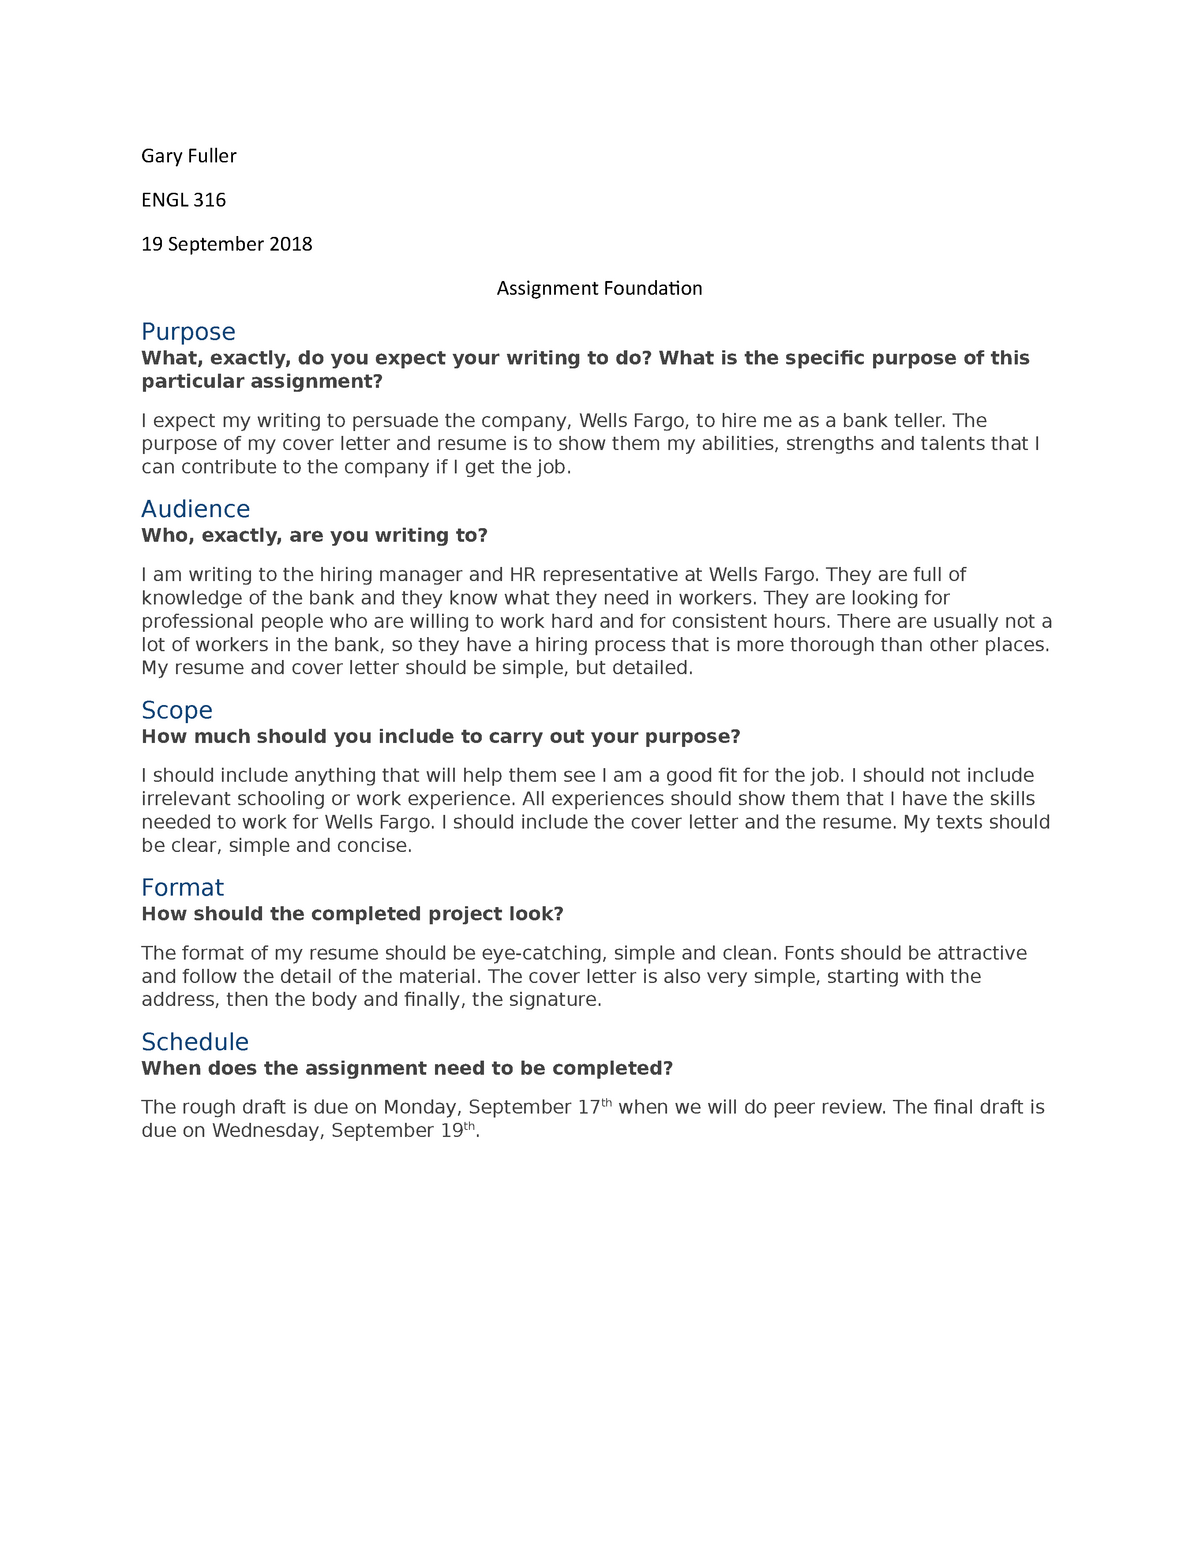 316 Resume and Cover Letter AF - ENGL 316: Honors Technical ...